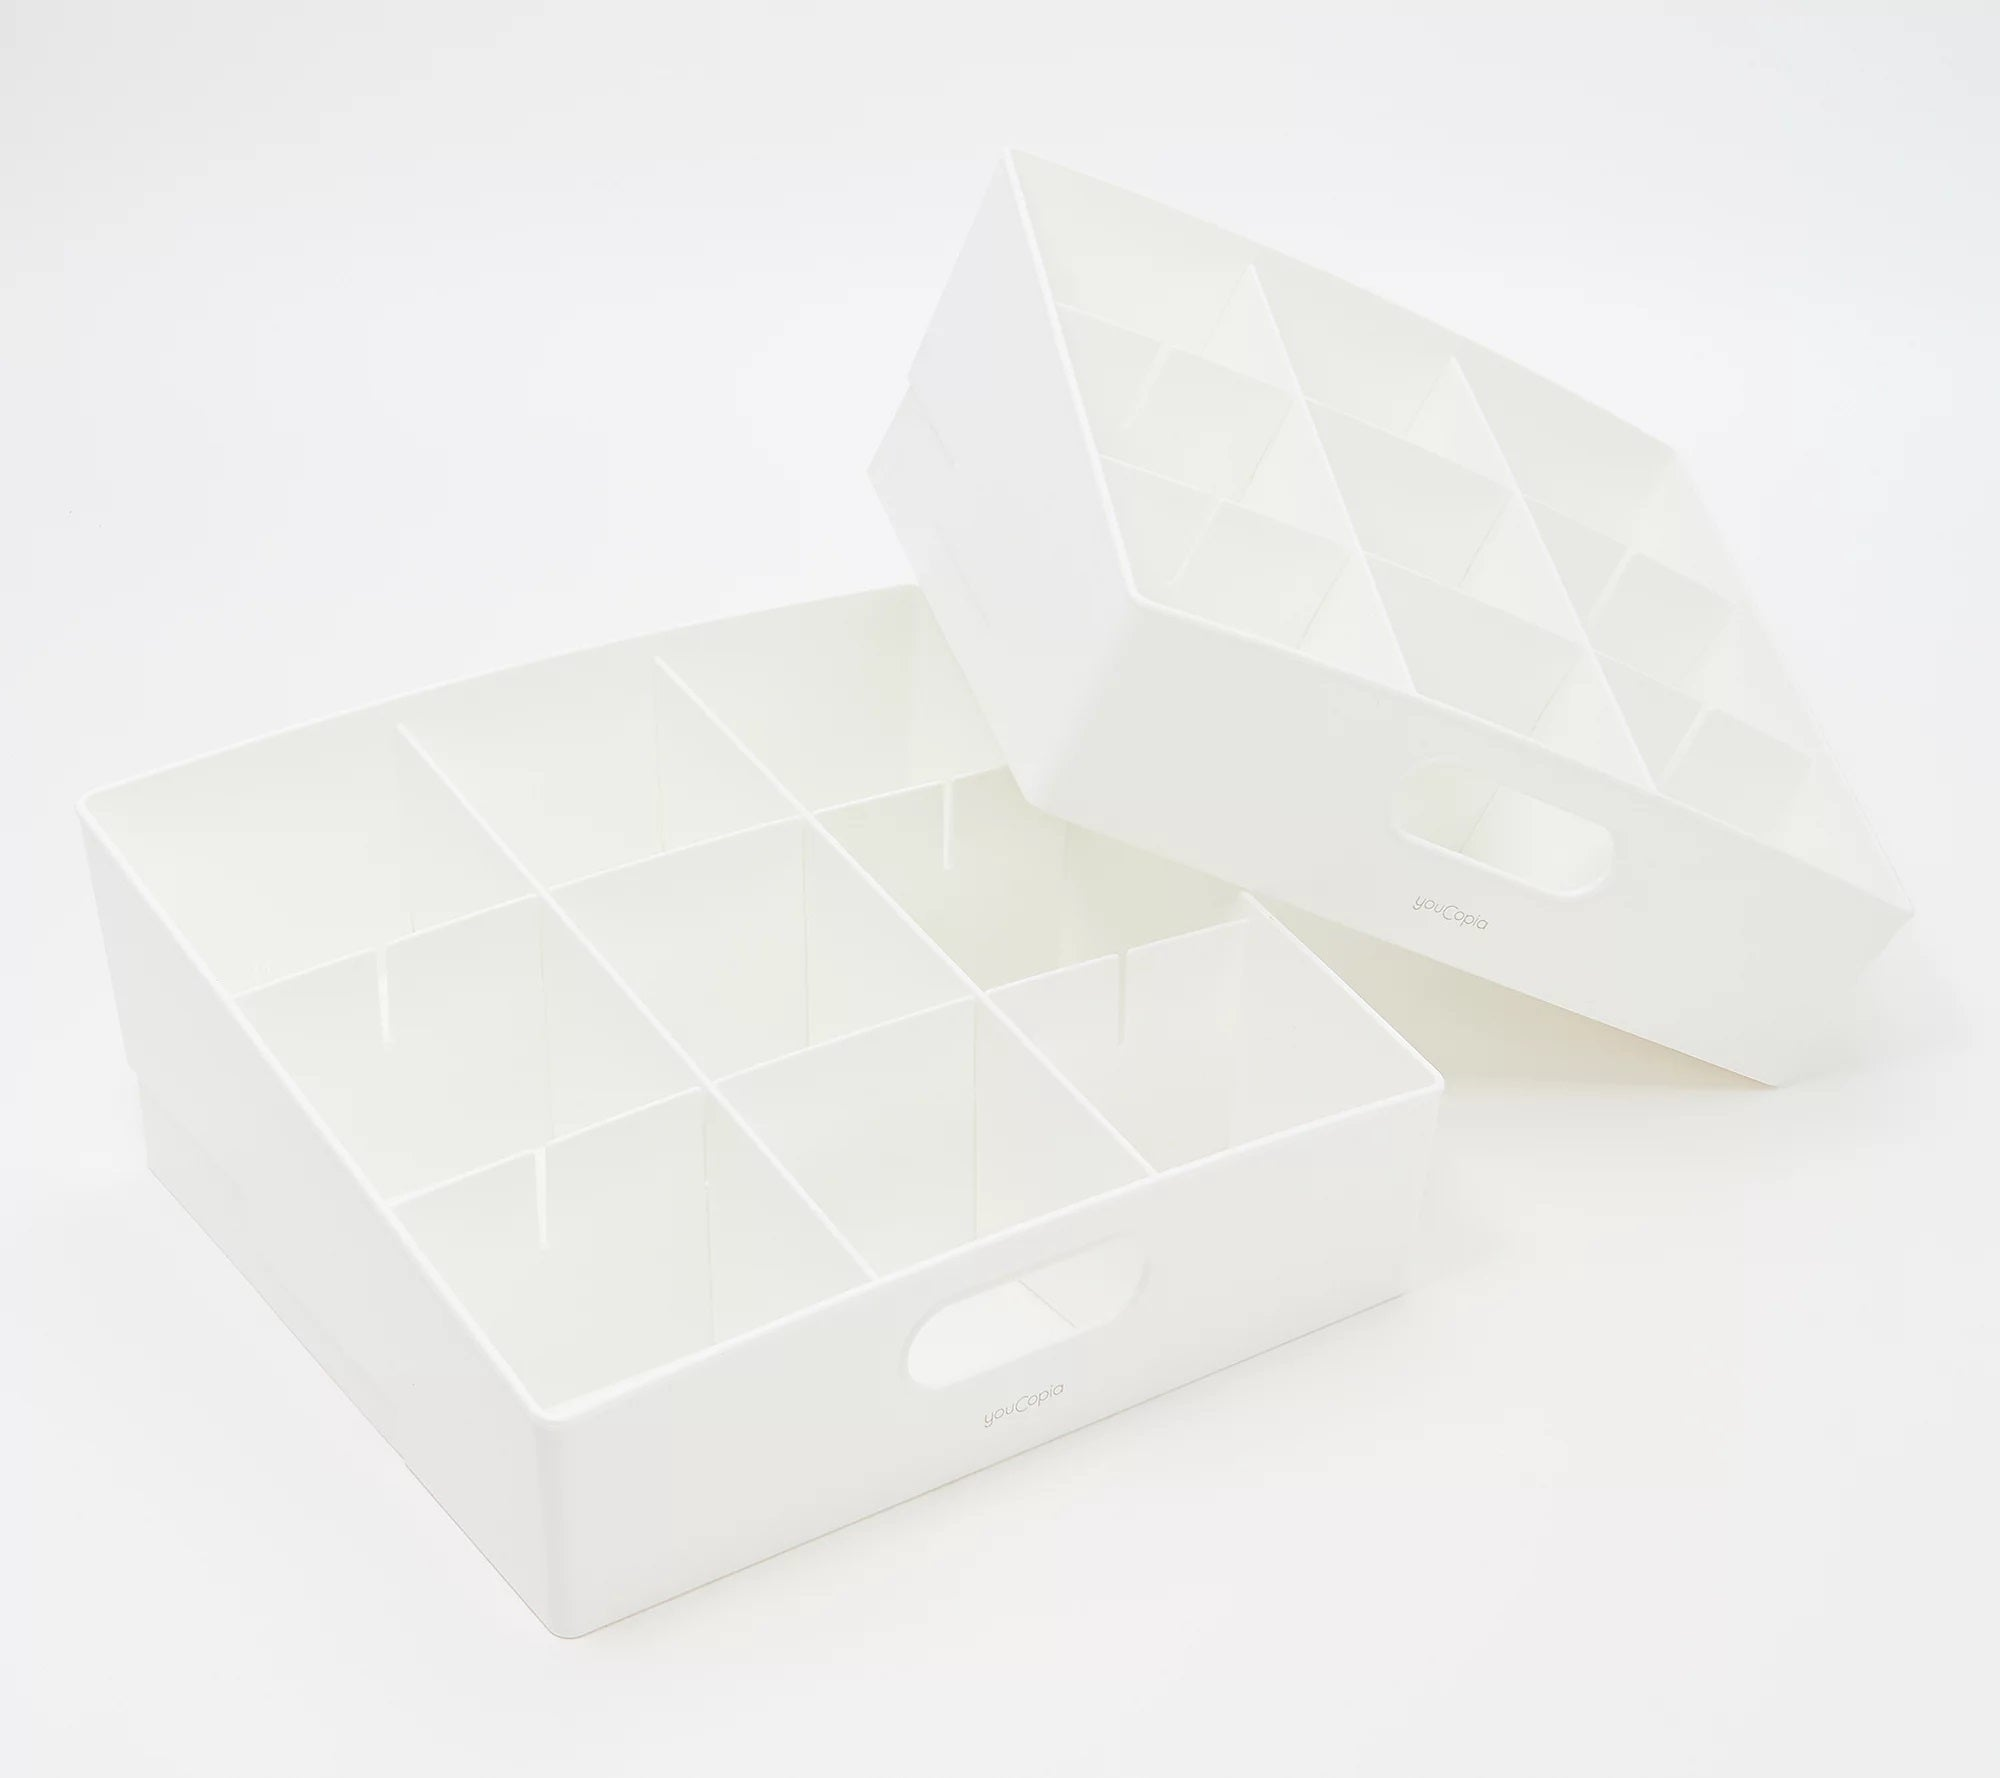 Youcopia 2-pc. Kitchen Storage Bins With Dividers White,